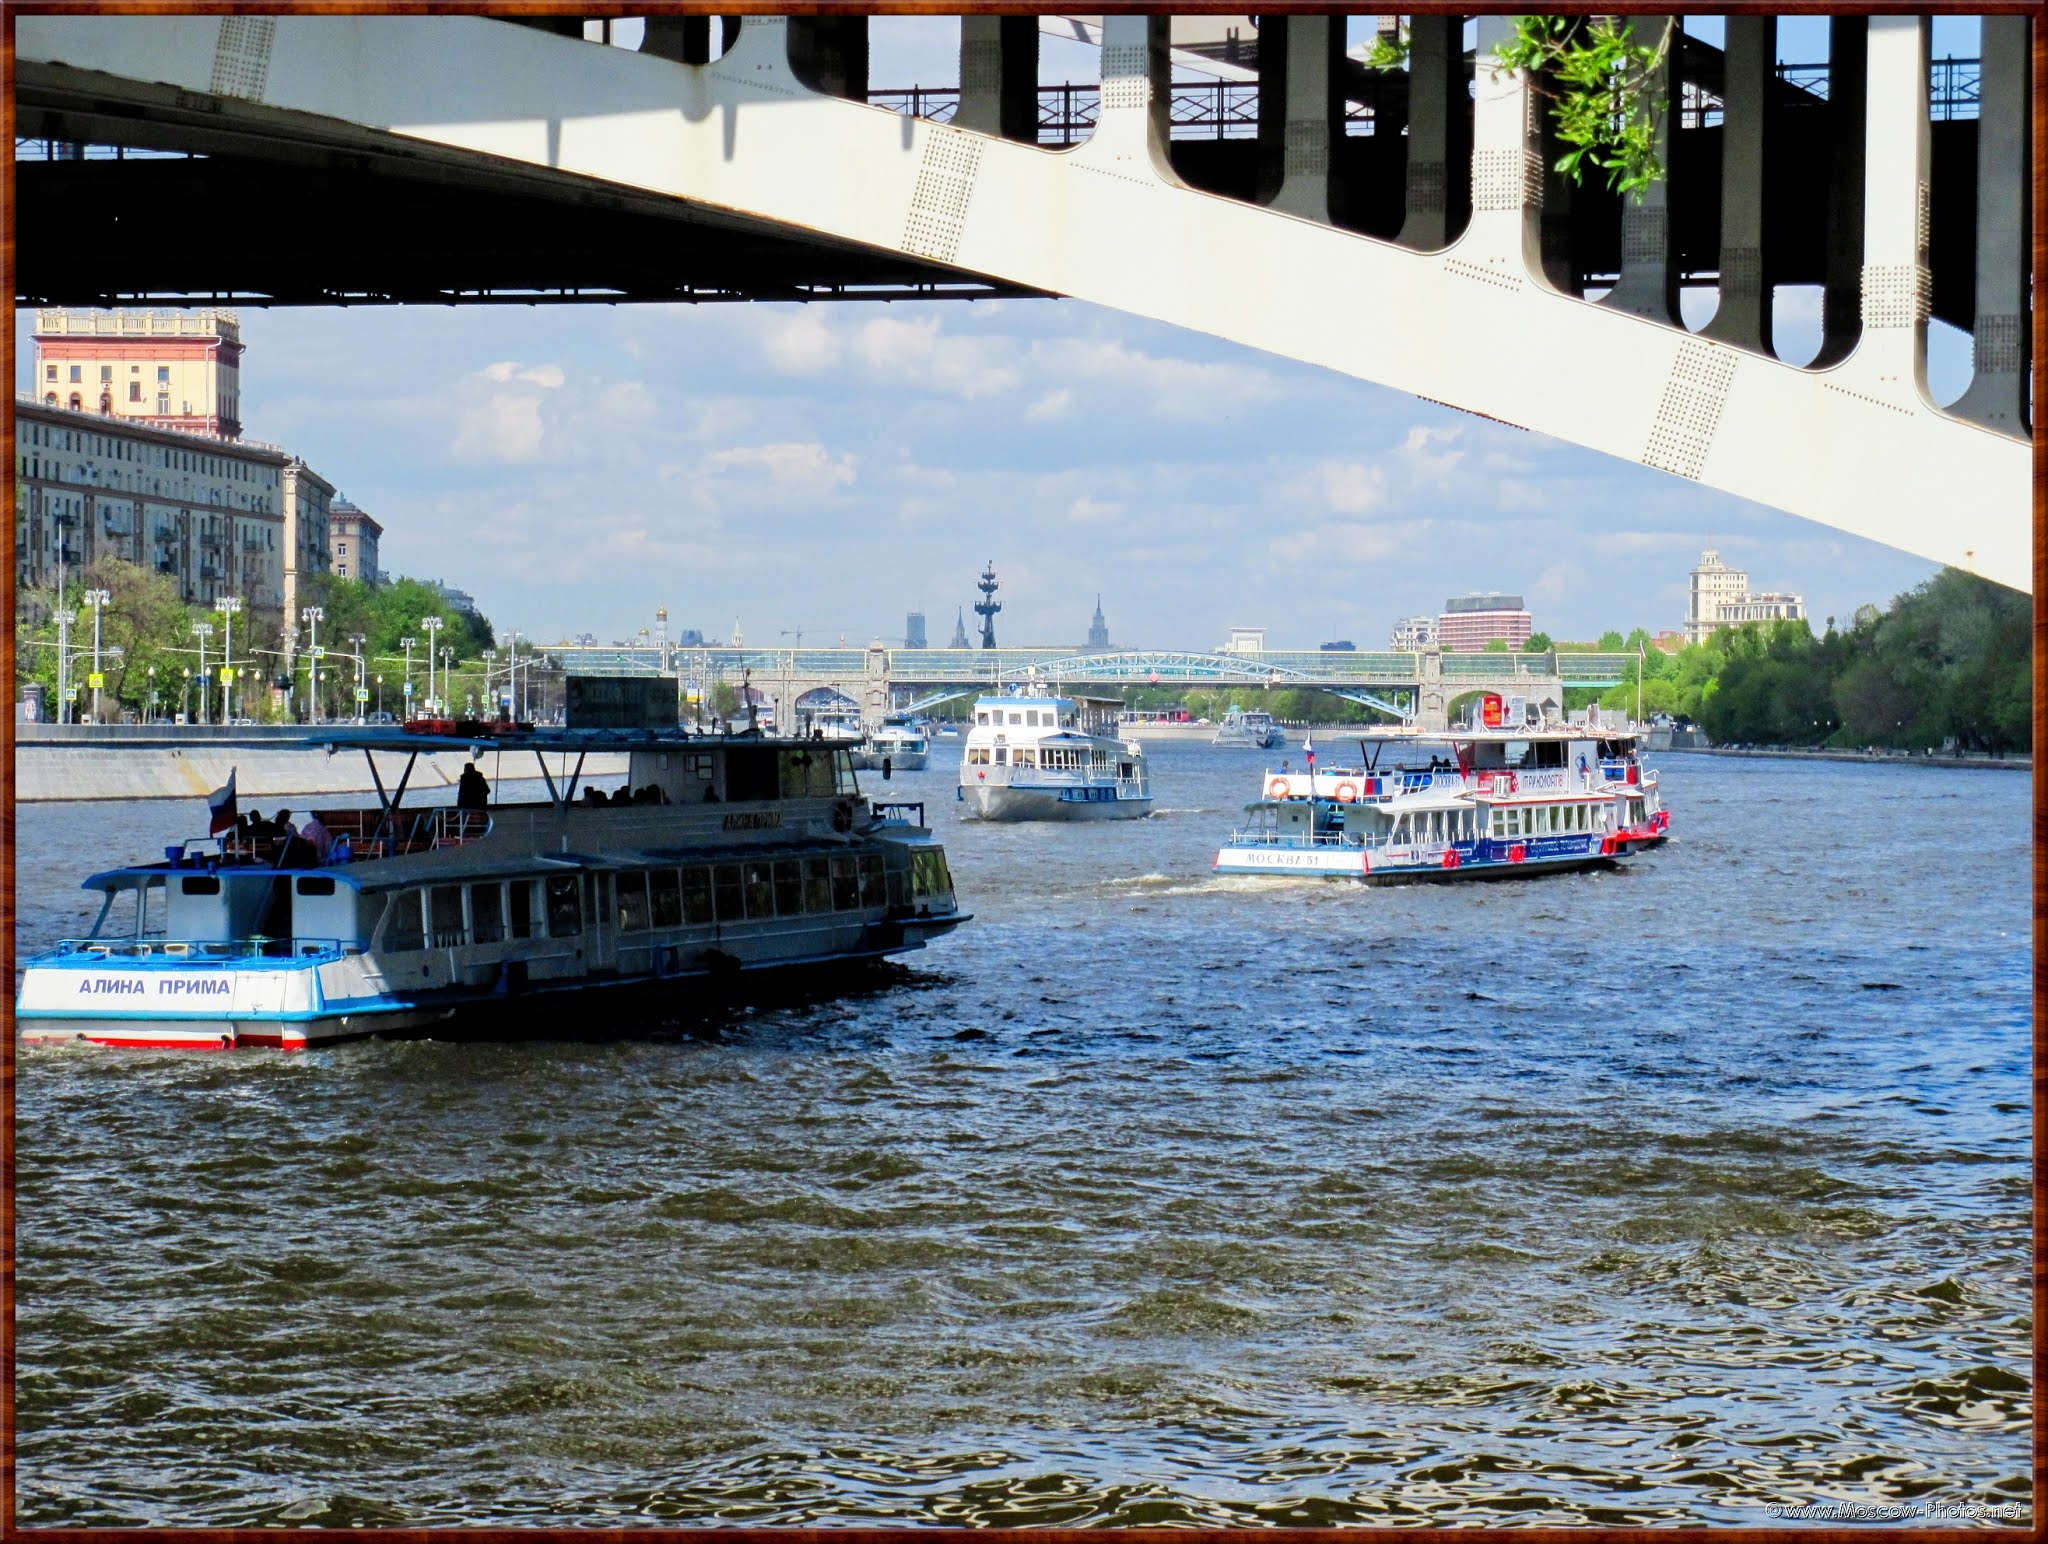 Moscow-River and bridges